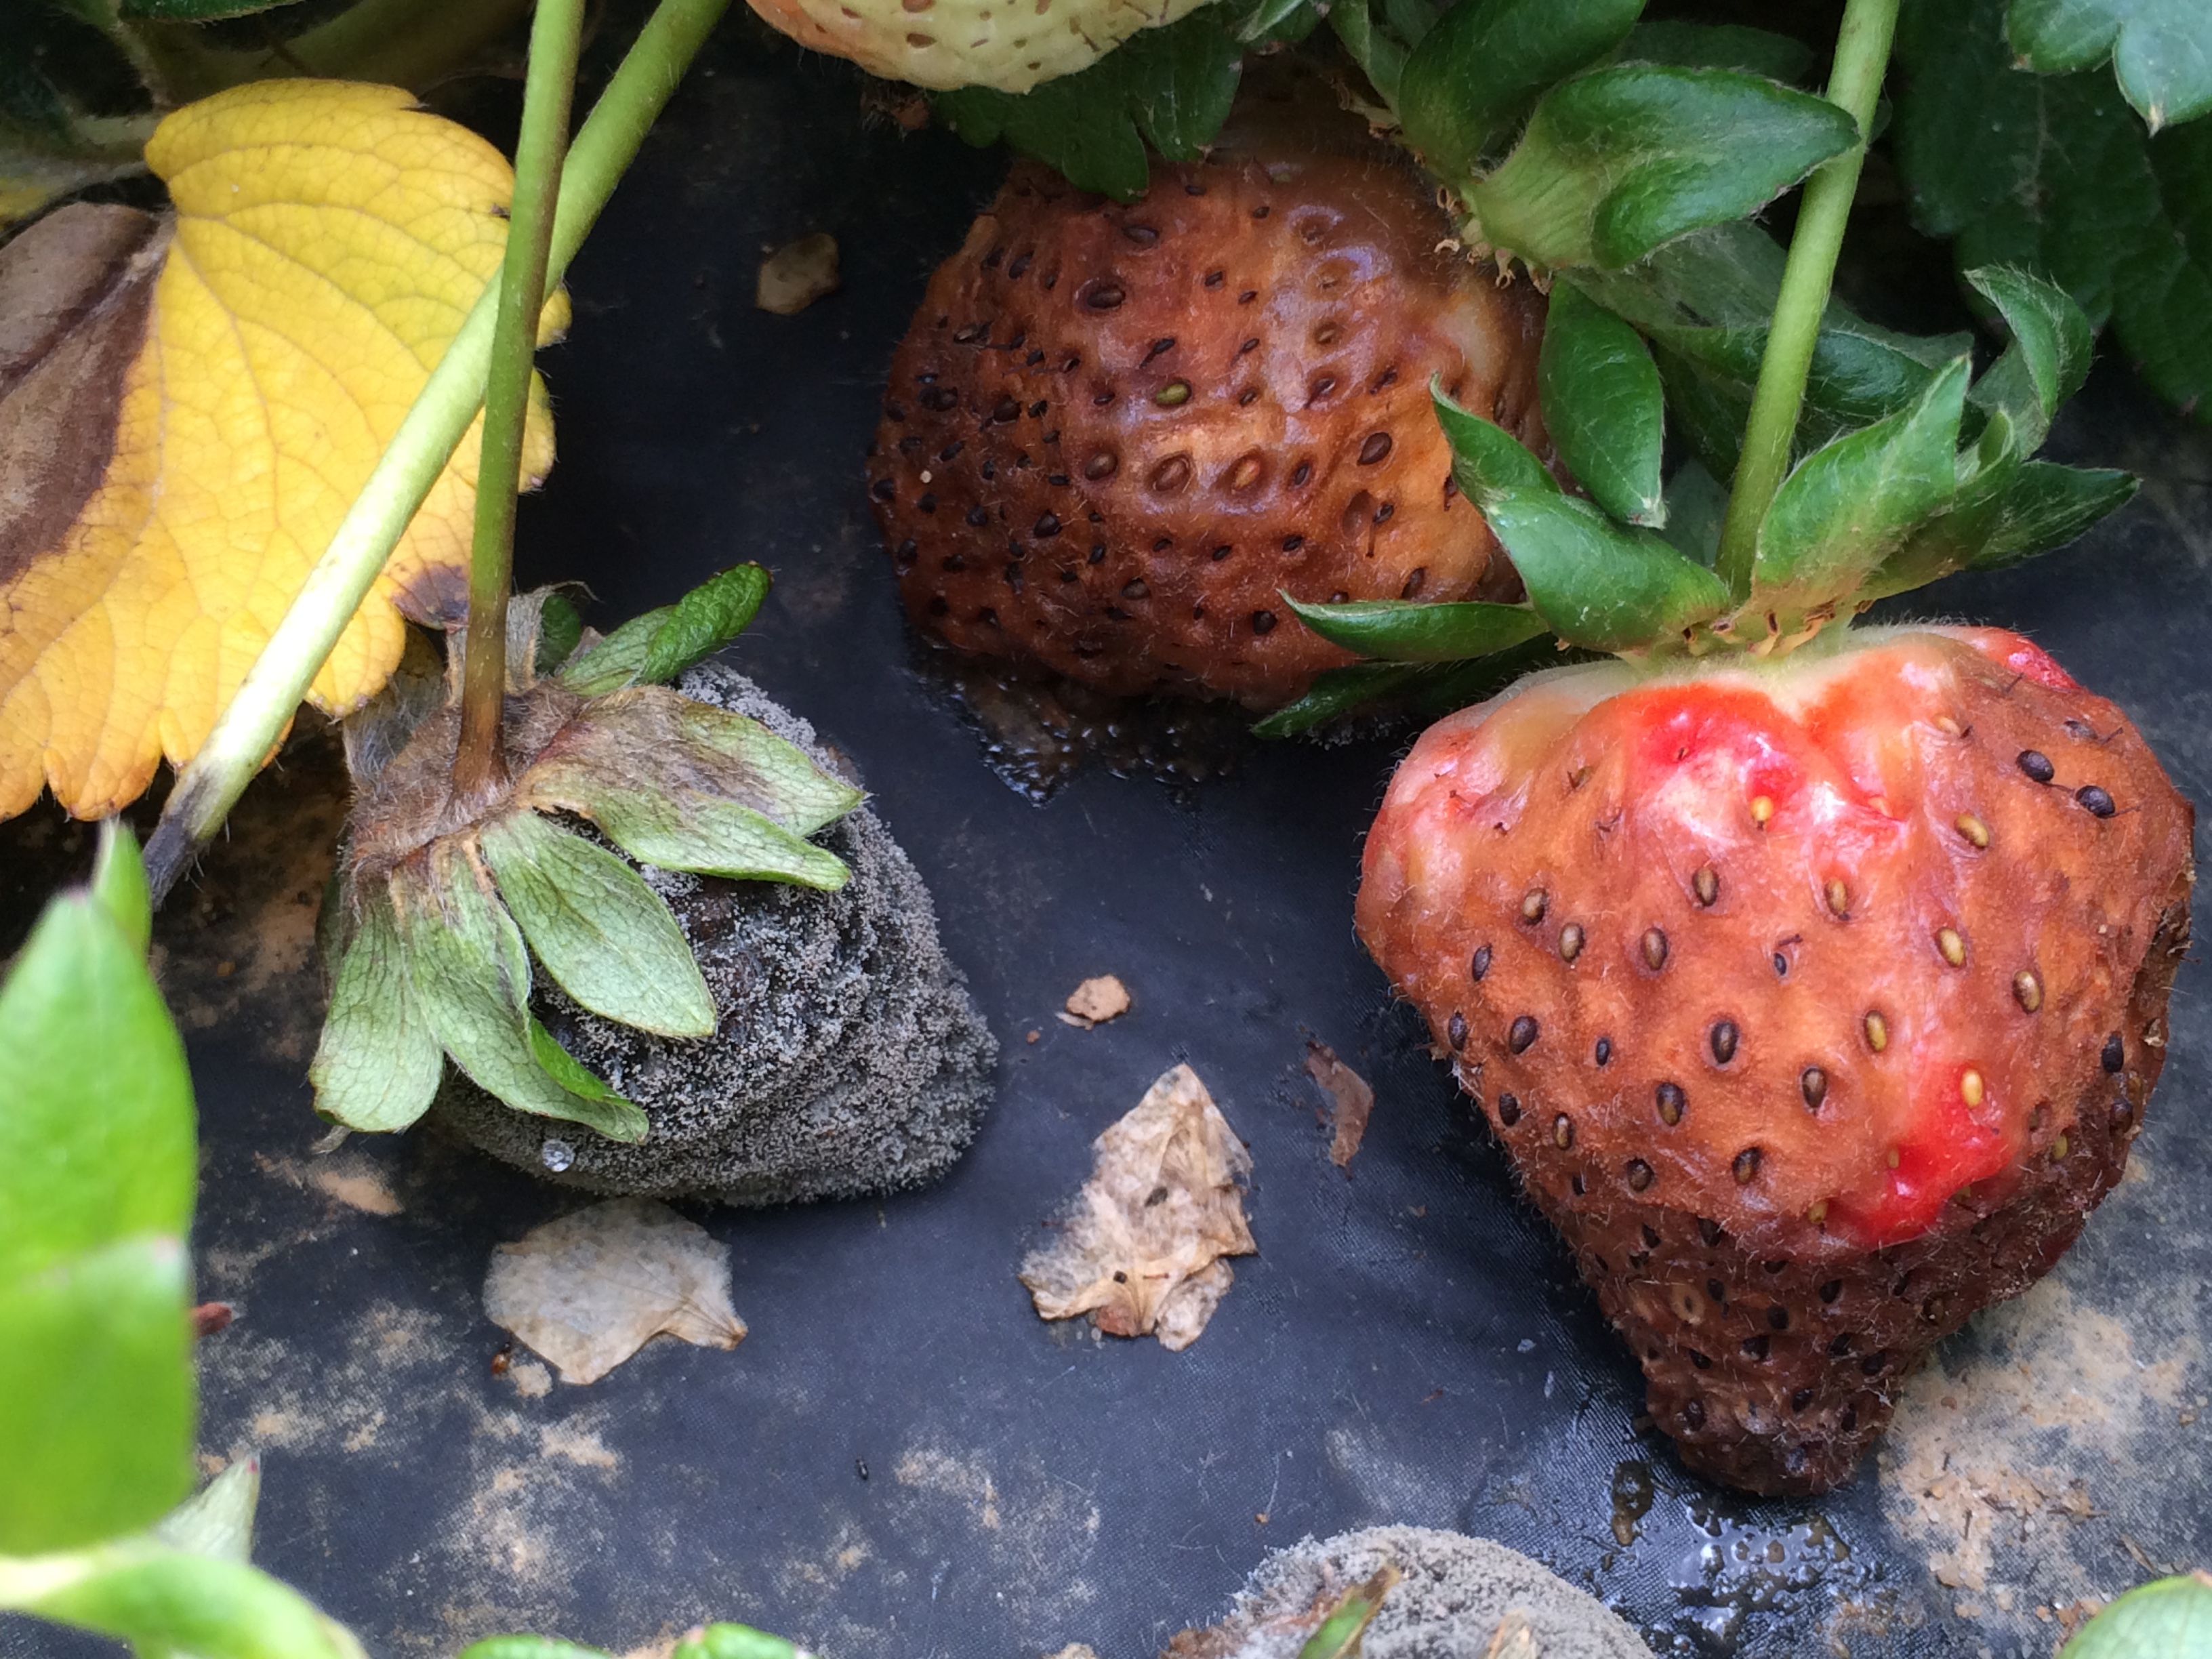 Symptoms and signs of gray mold (left) and anthracnose (right) on strawberries.